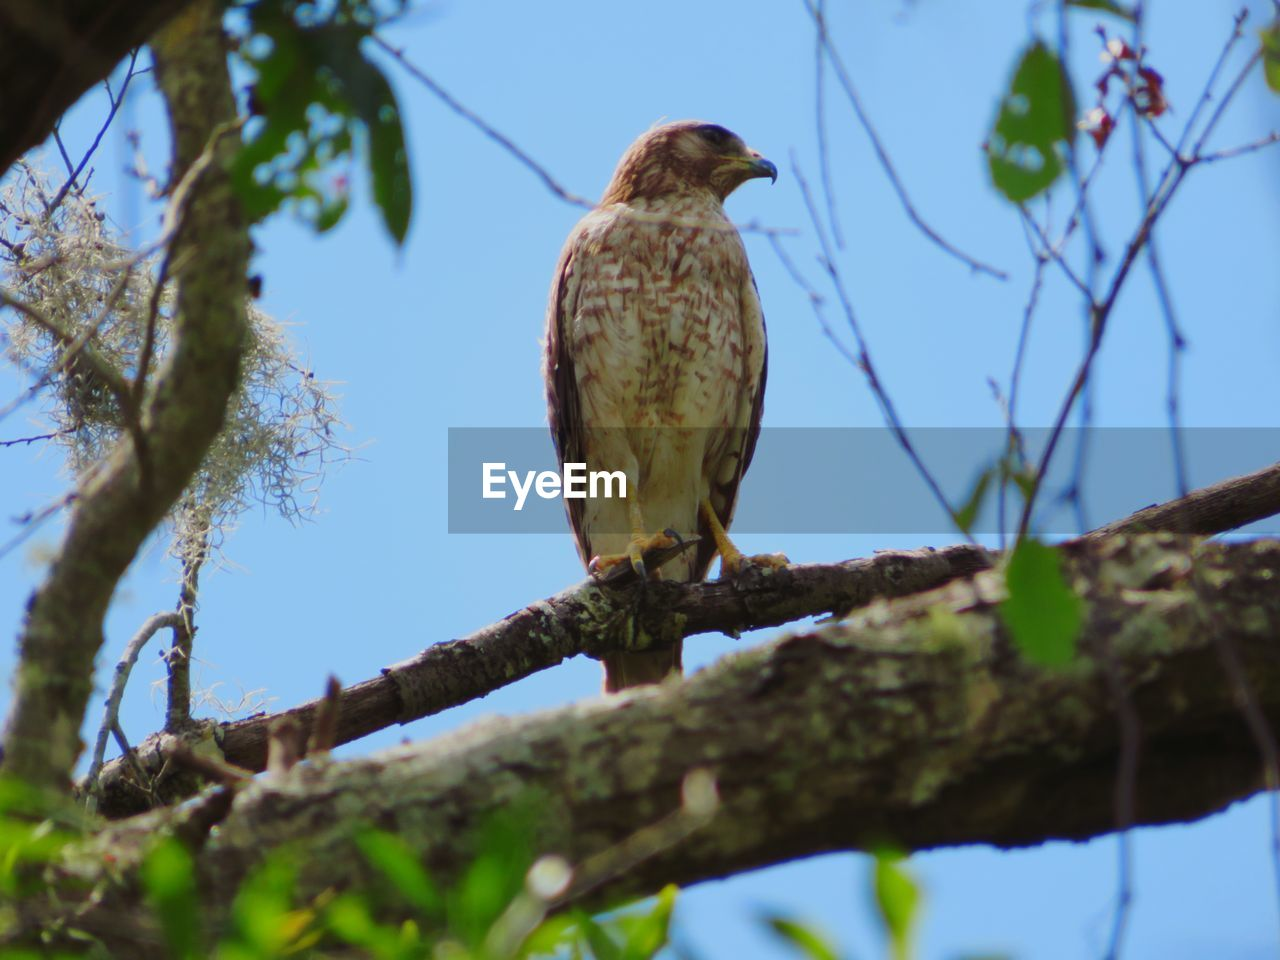 tree, plant, low angle view, branch, vertebrate, animal themes, bird, animal, perching, one animal, animal wildlife, nature, animals in the wild, day, sky, no people, selective focus, bird of prey, outdoors, focus on foreground, eagle